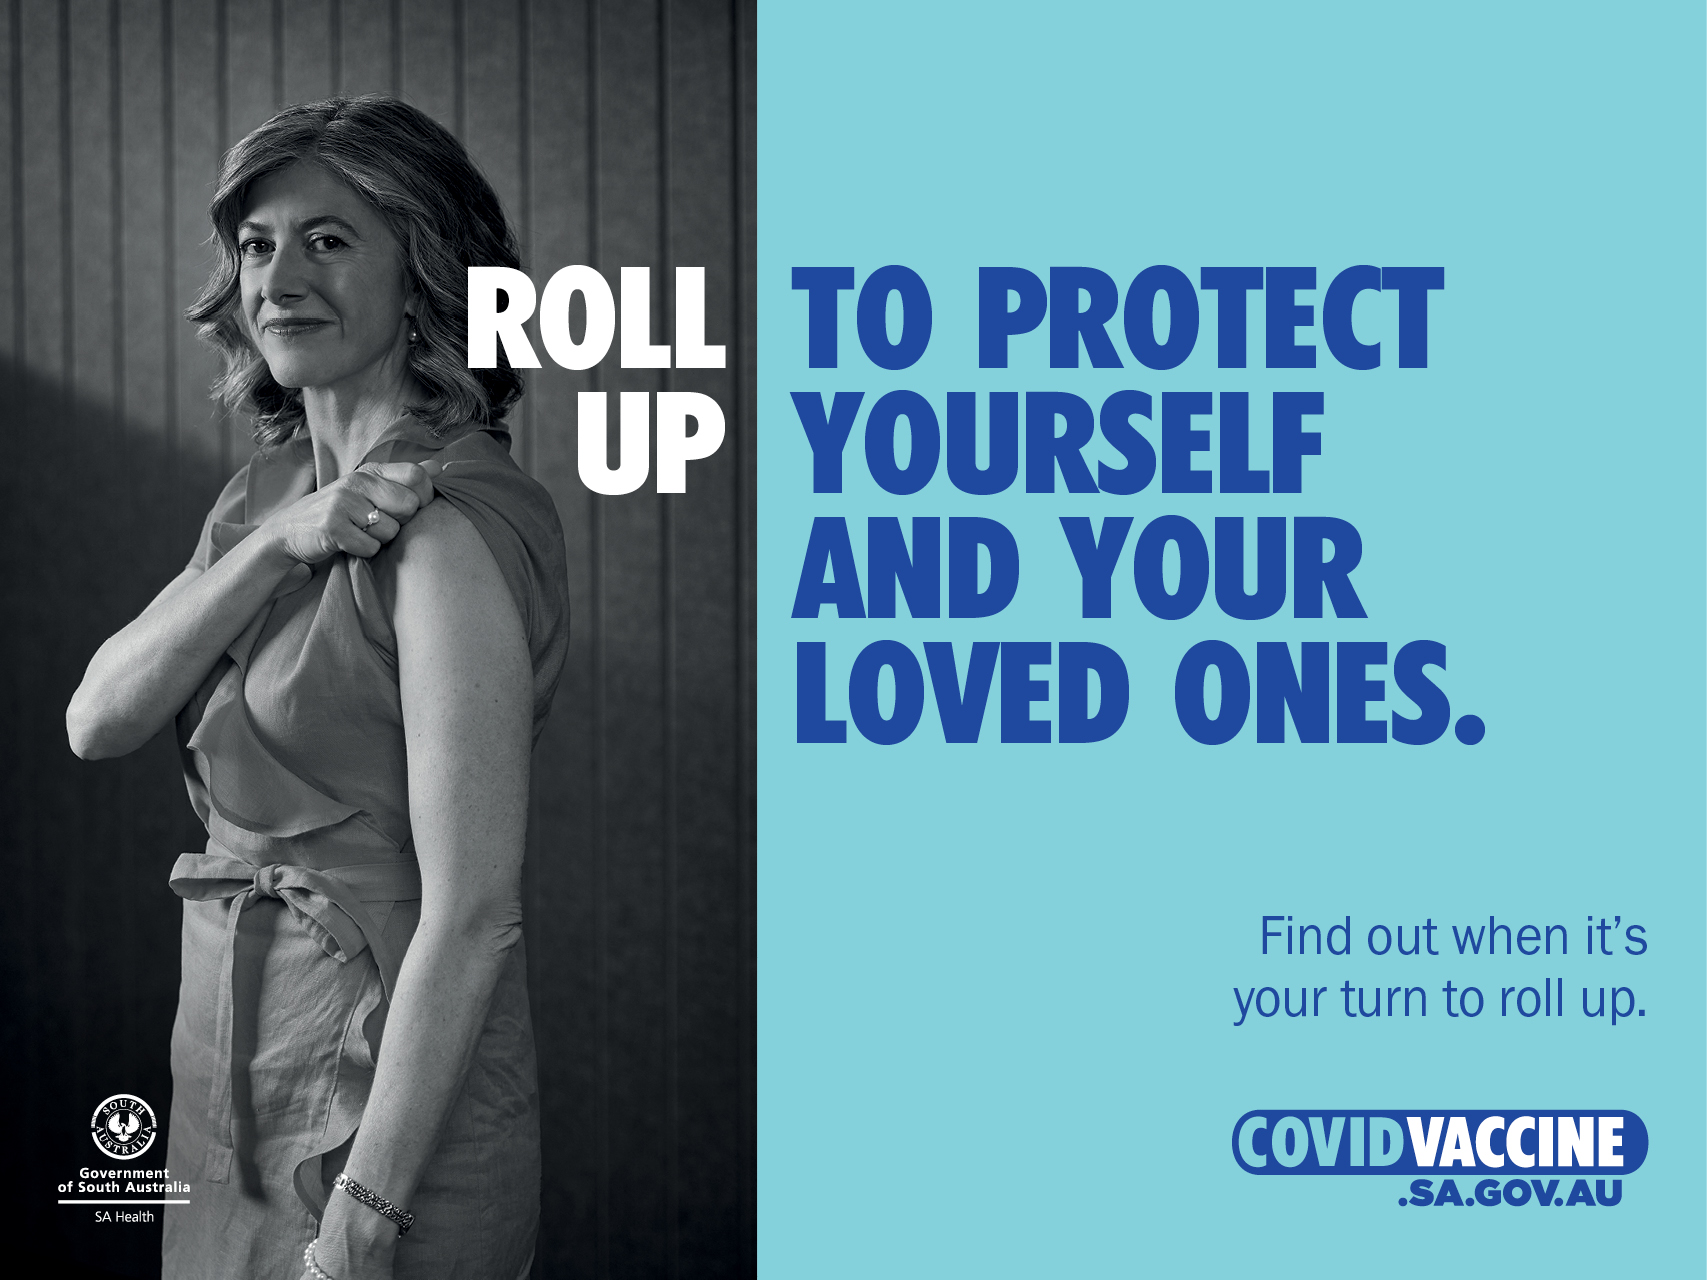 Roll up to protect yourself and your loved ones. Find out when it's your turn to roll up.